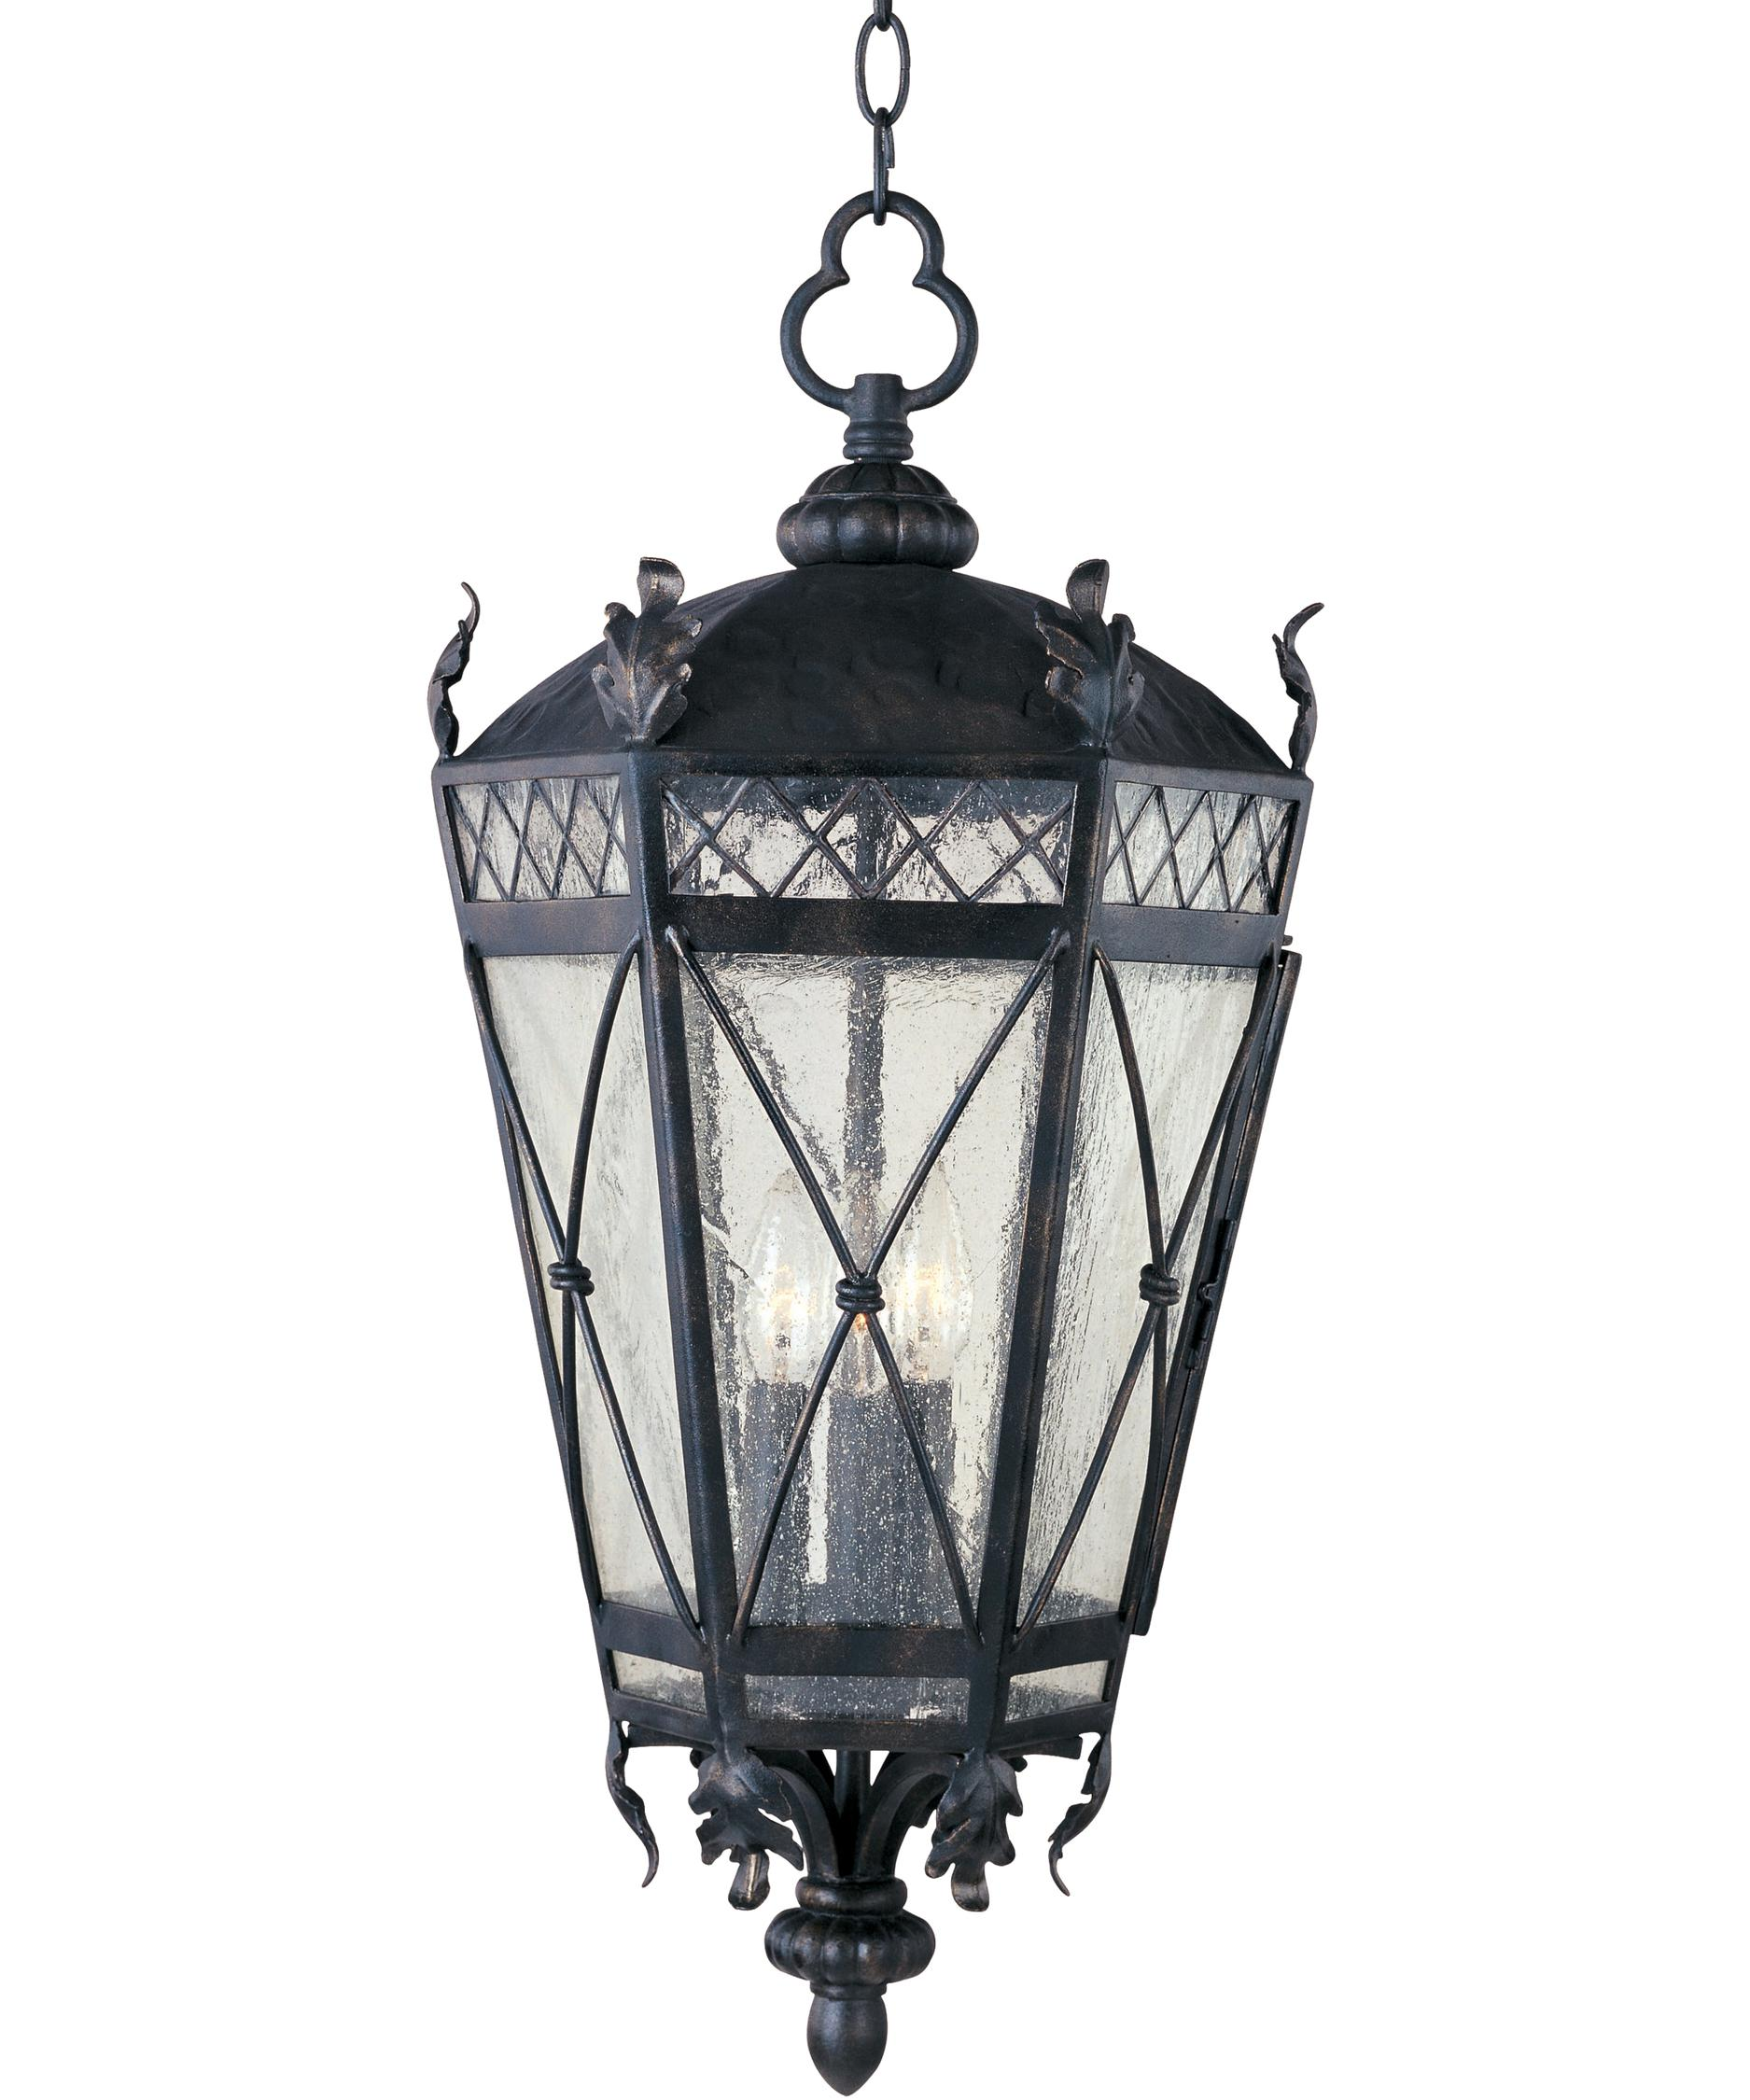 Outdoor hanging lighting - Shown In Artesian Bronze Finish And Seedy Glass